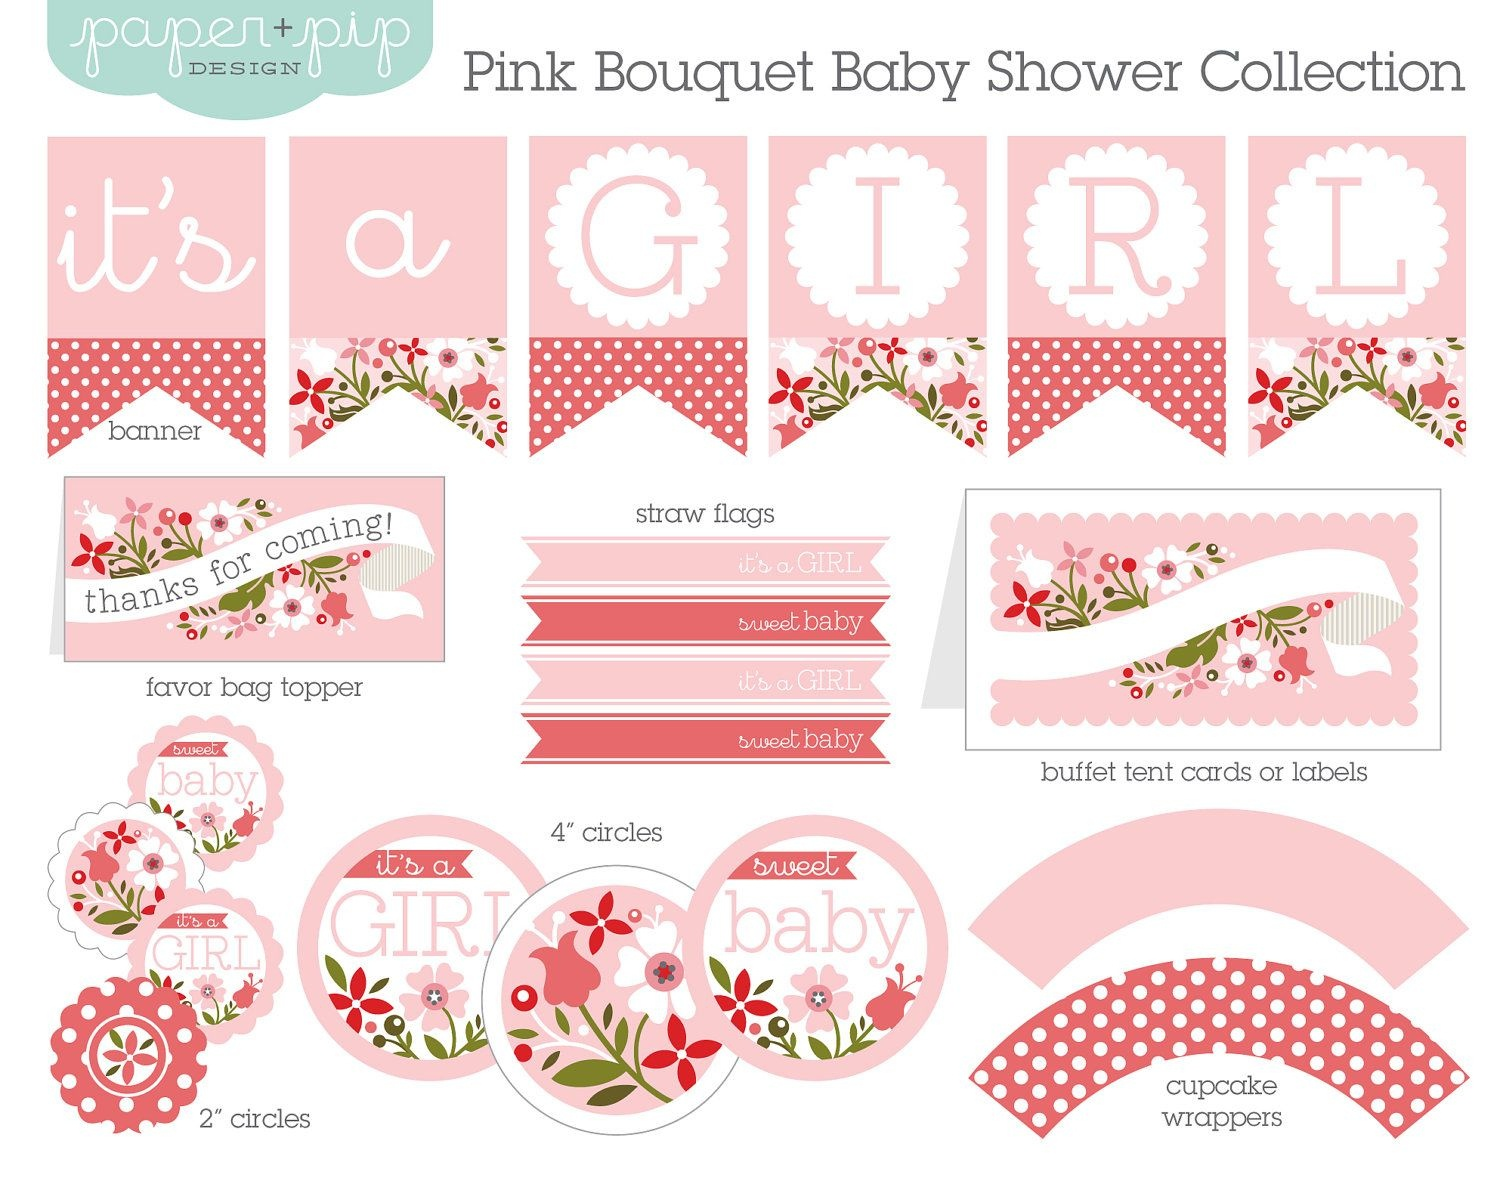 Baby Shower Decorations Printable Pink Bouquetpaperandpip - Free Baby Shower Printables Decorations